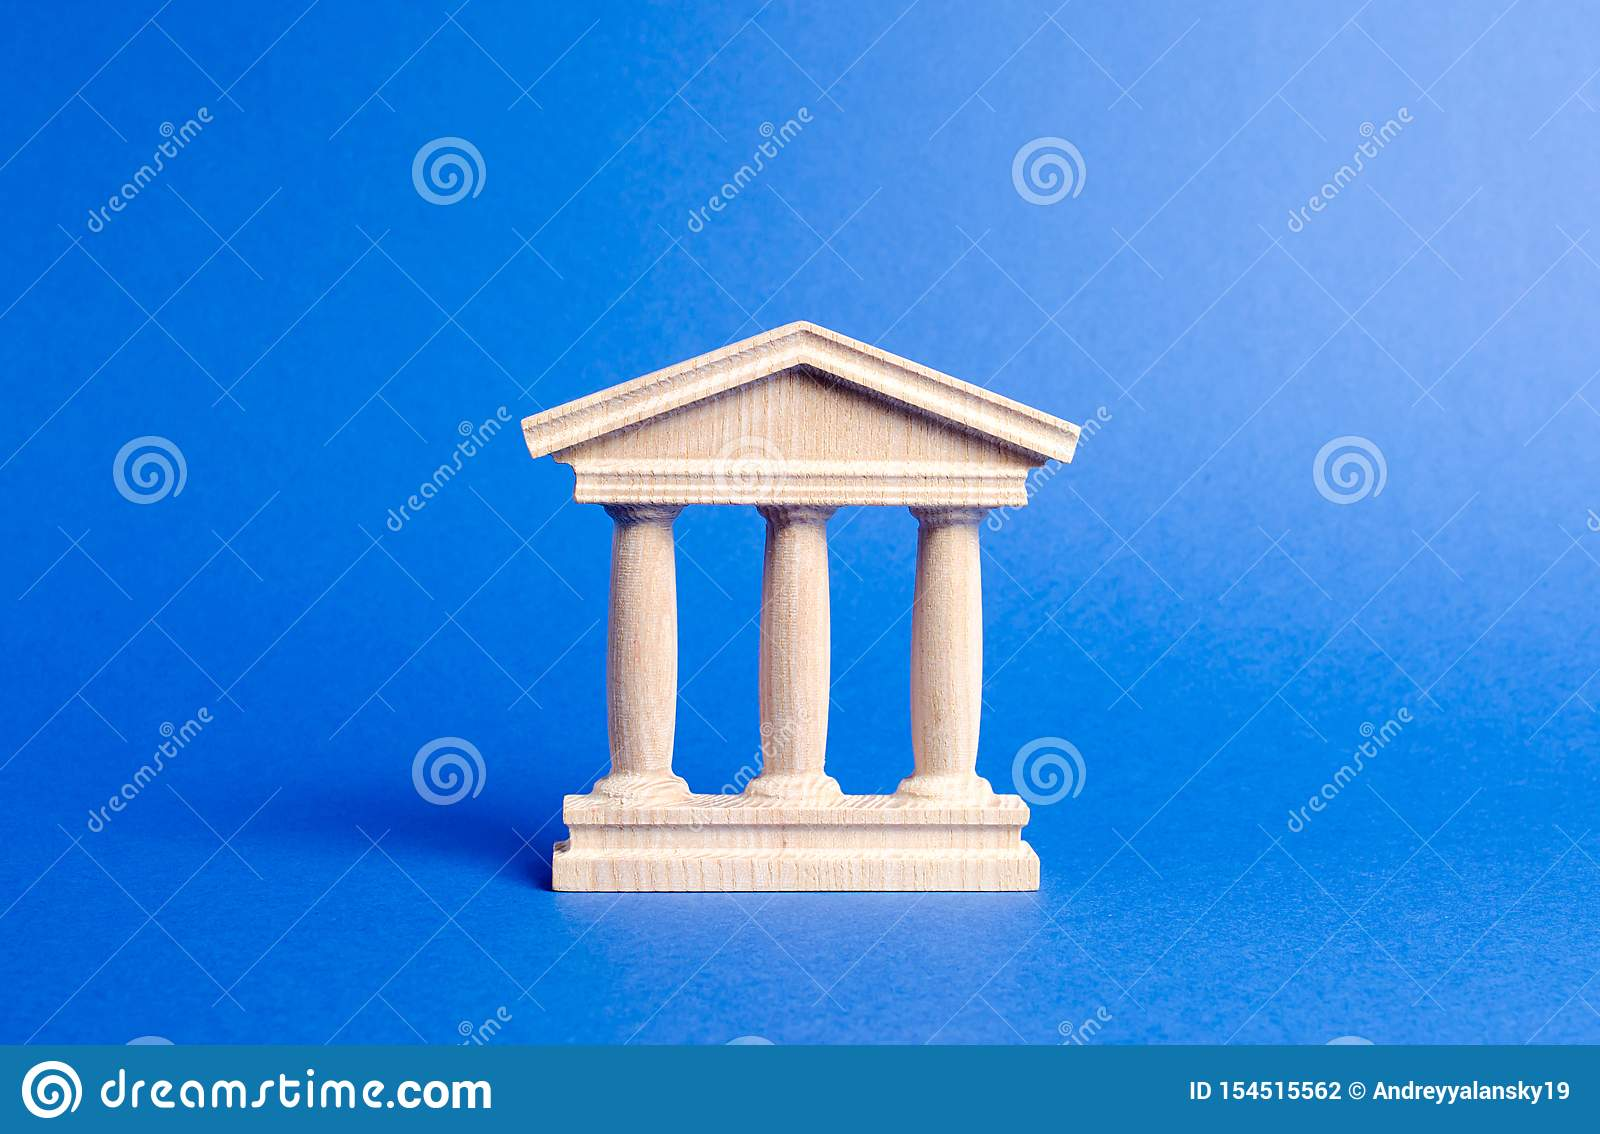 Building figurine with pillars in antique style. Concept of city administration, bank, university, court or library. Architectura